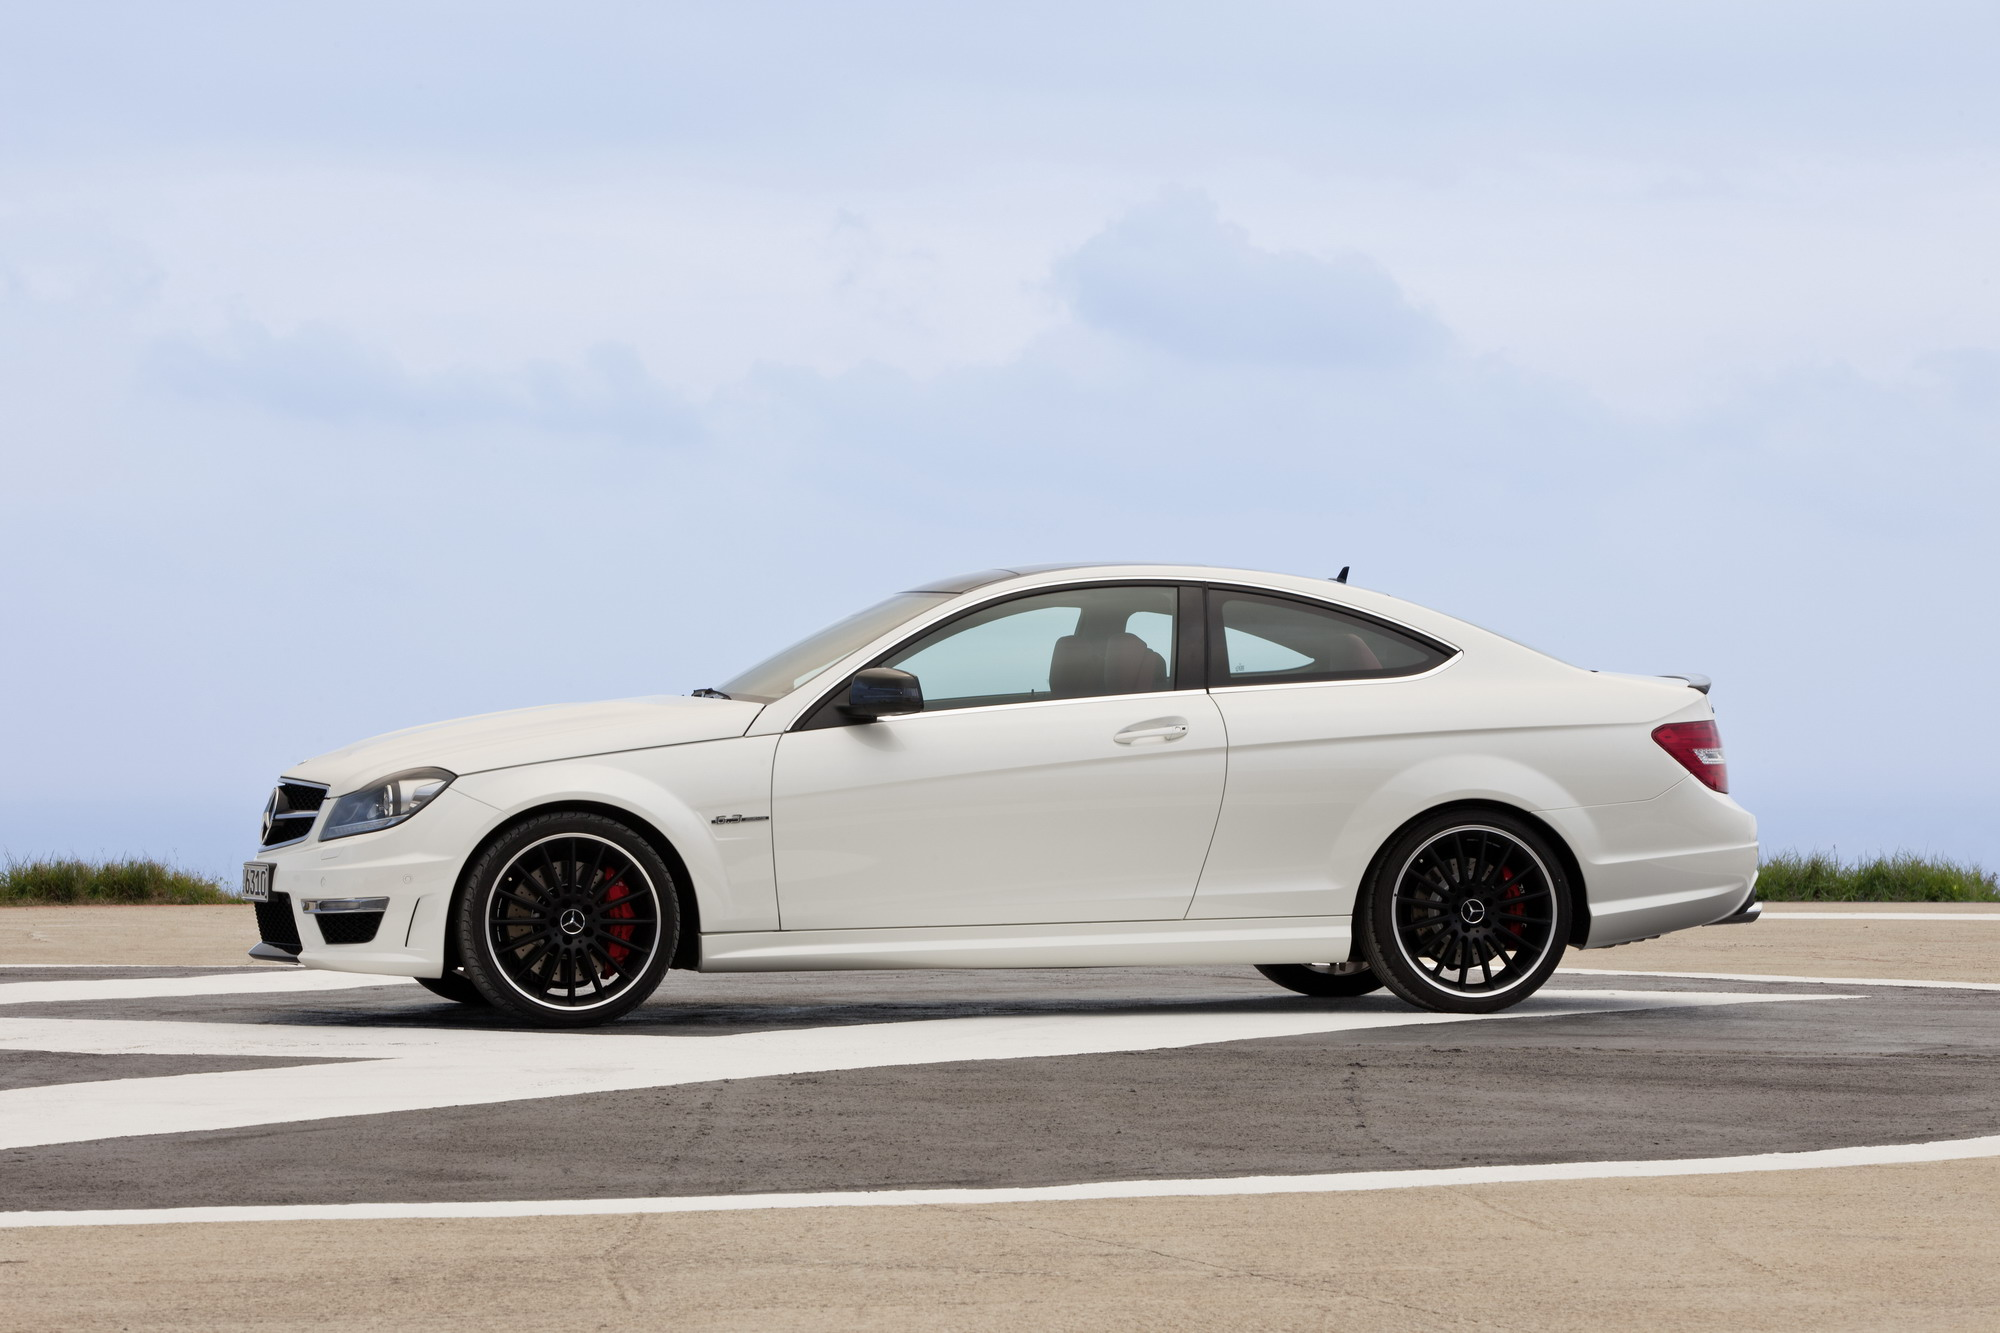 2013 Mercedes C63 AMG Coupe | Top Speed